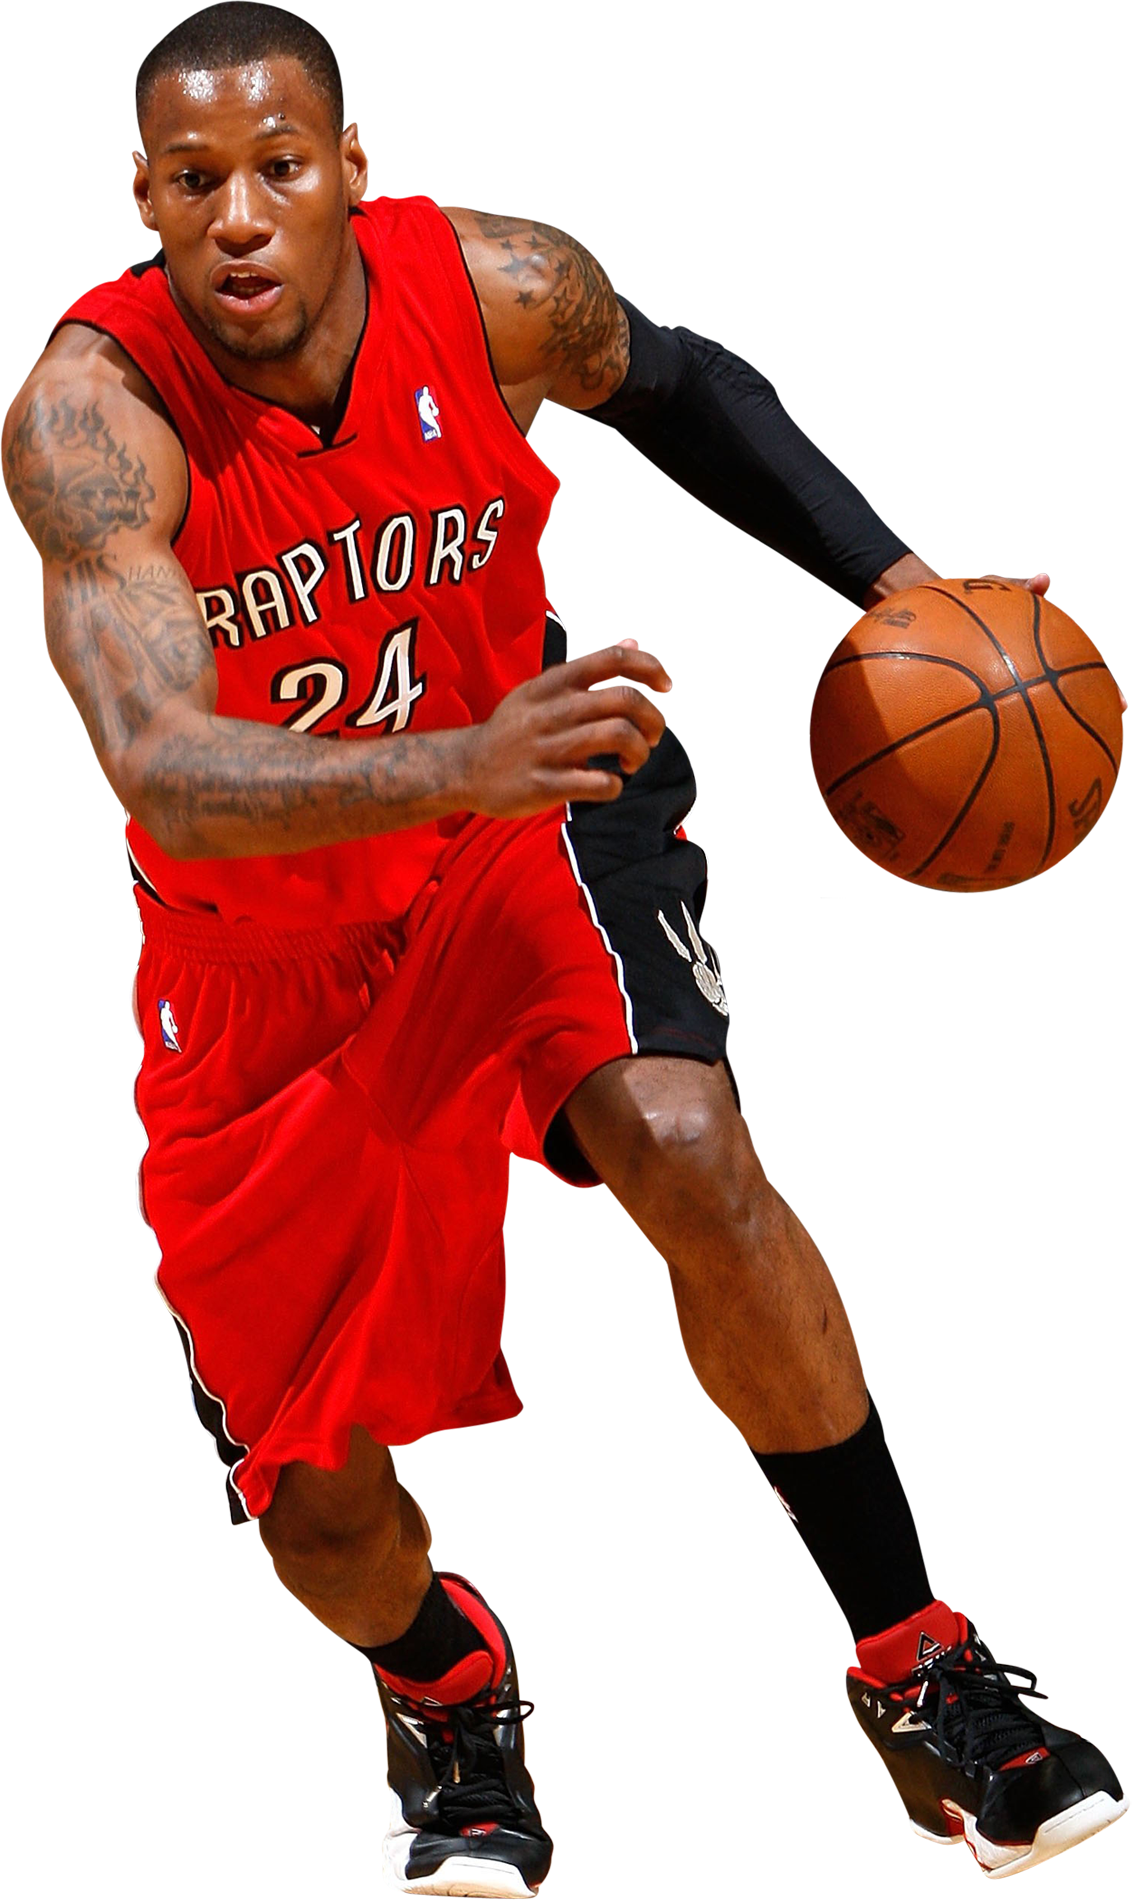 Toronto Player Basketball Raptors Jersey Free PNG HQ PNG Image